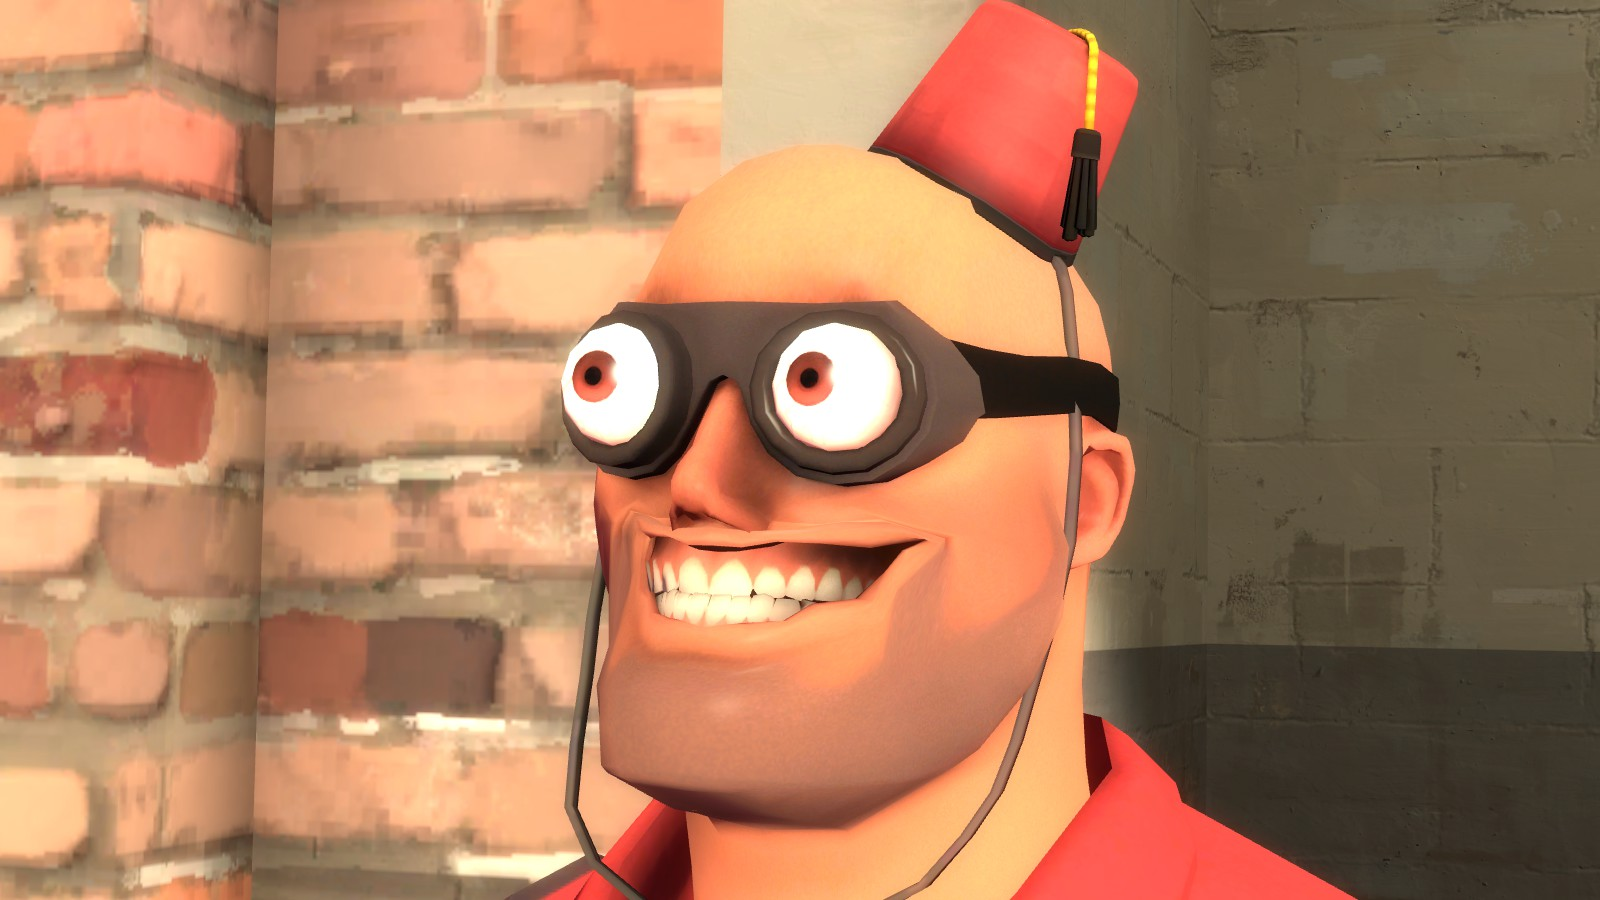 Steam Workshop :: TF2 Hats and Cosmetic Items